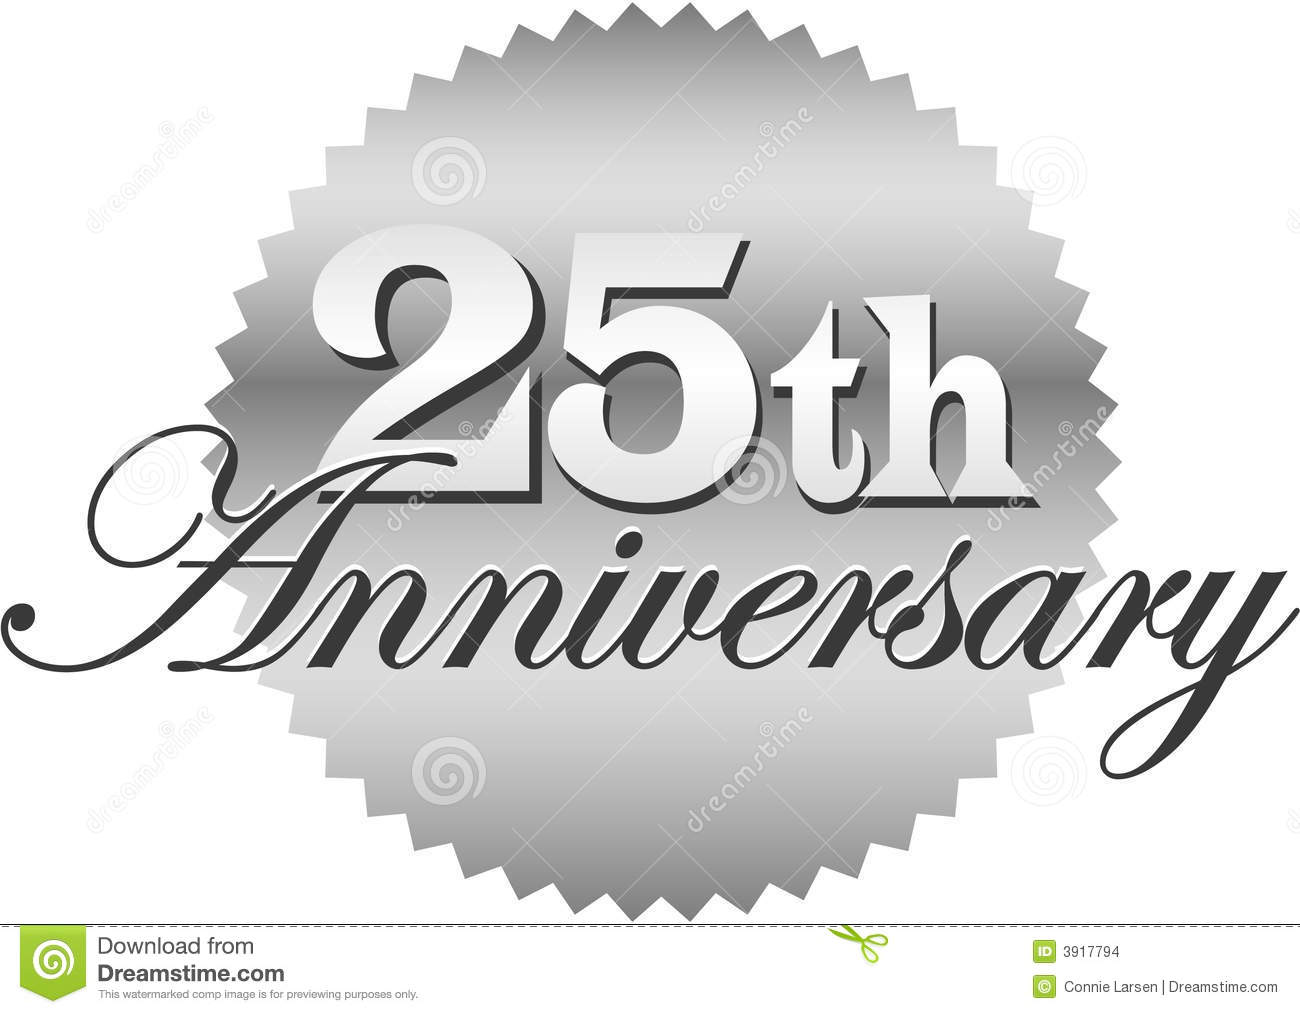 25 year anniversary clipart jpg black and white stock 25th Wedding Anniversary Cake Topper. 25th anniversary banner ... jpg black and white stock